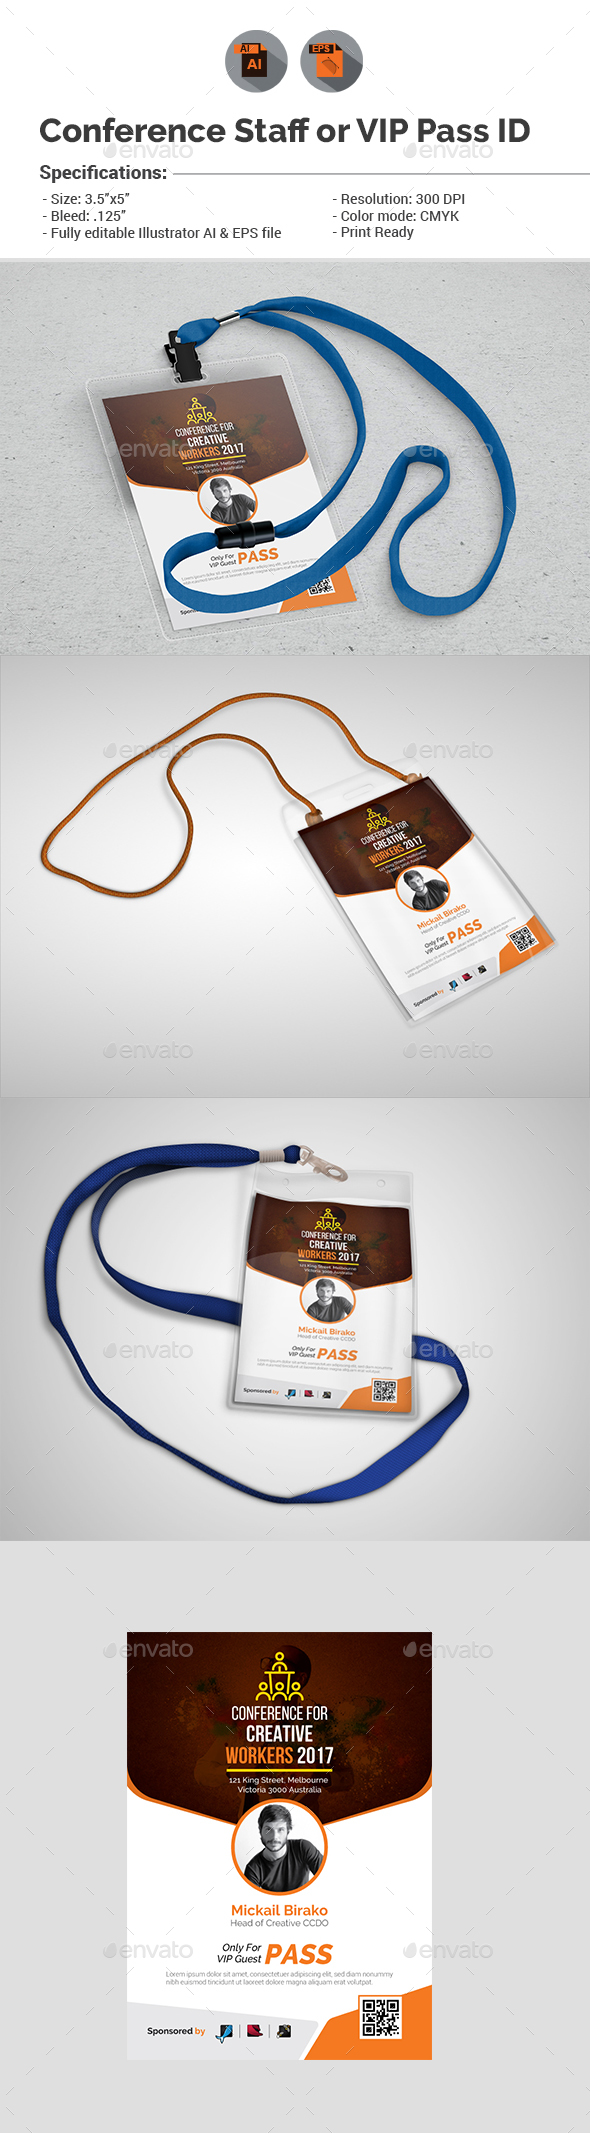 Conference Id Graphics Designs Templates From GraphicRiver - Conference badge template